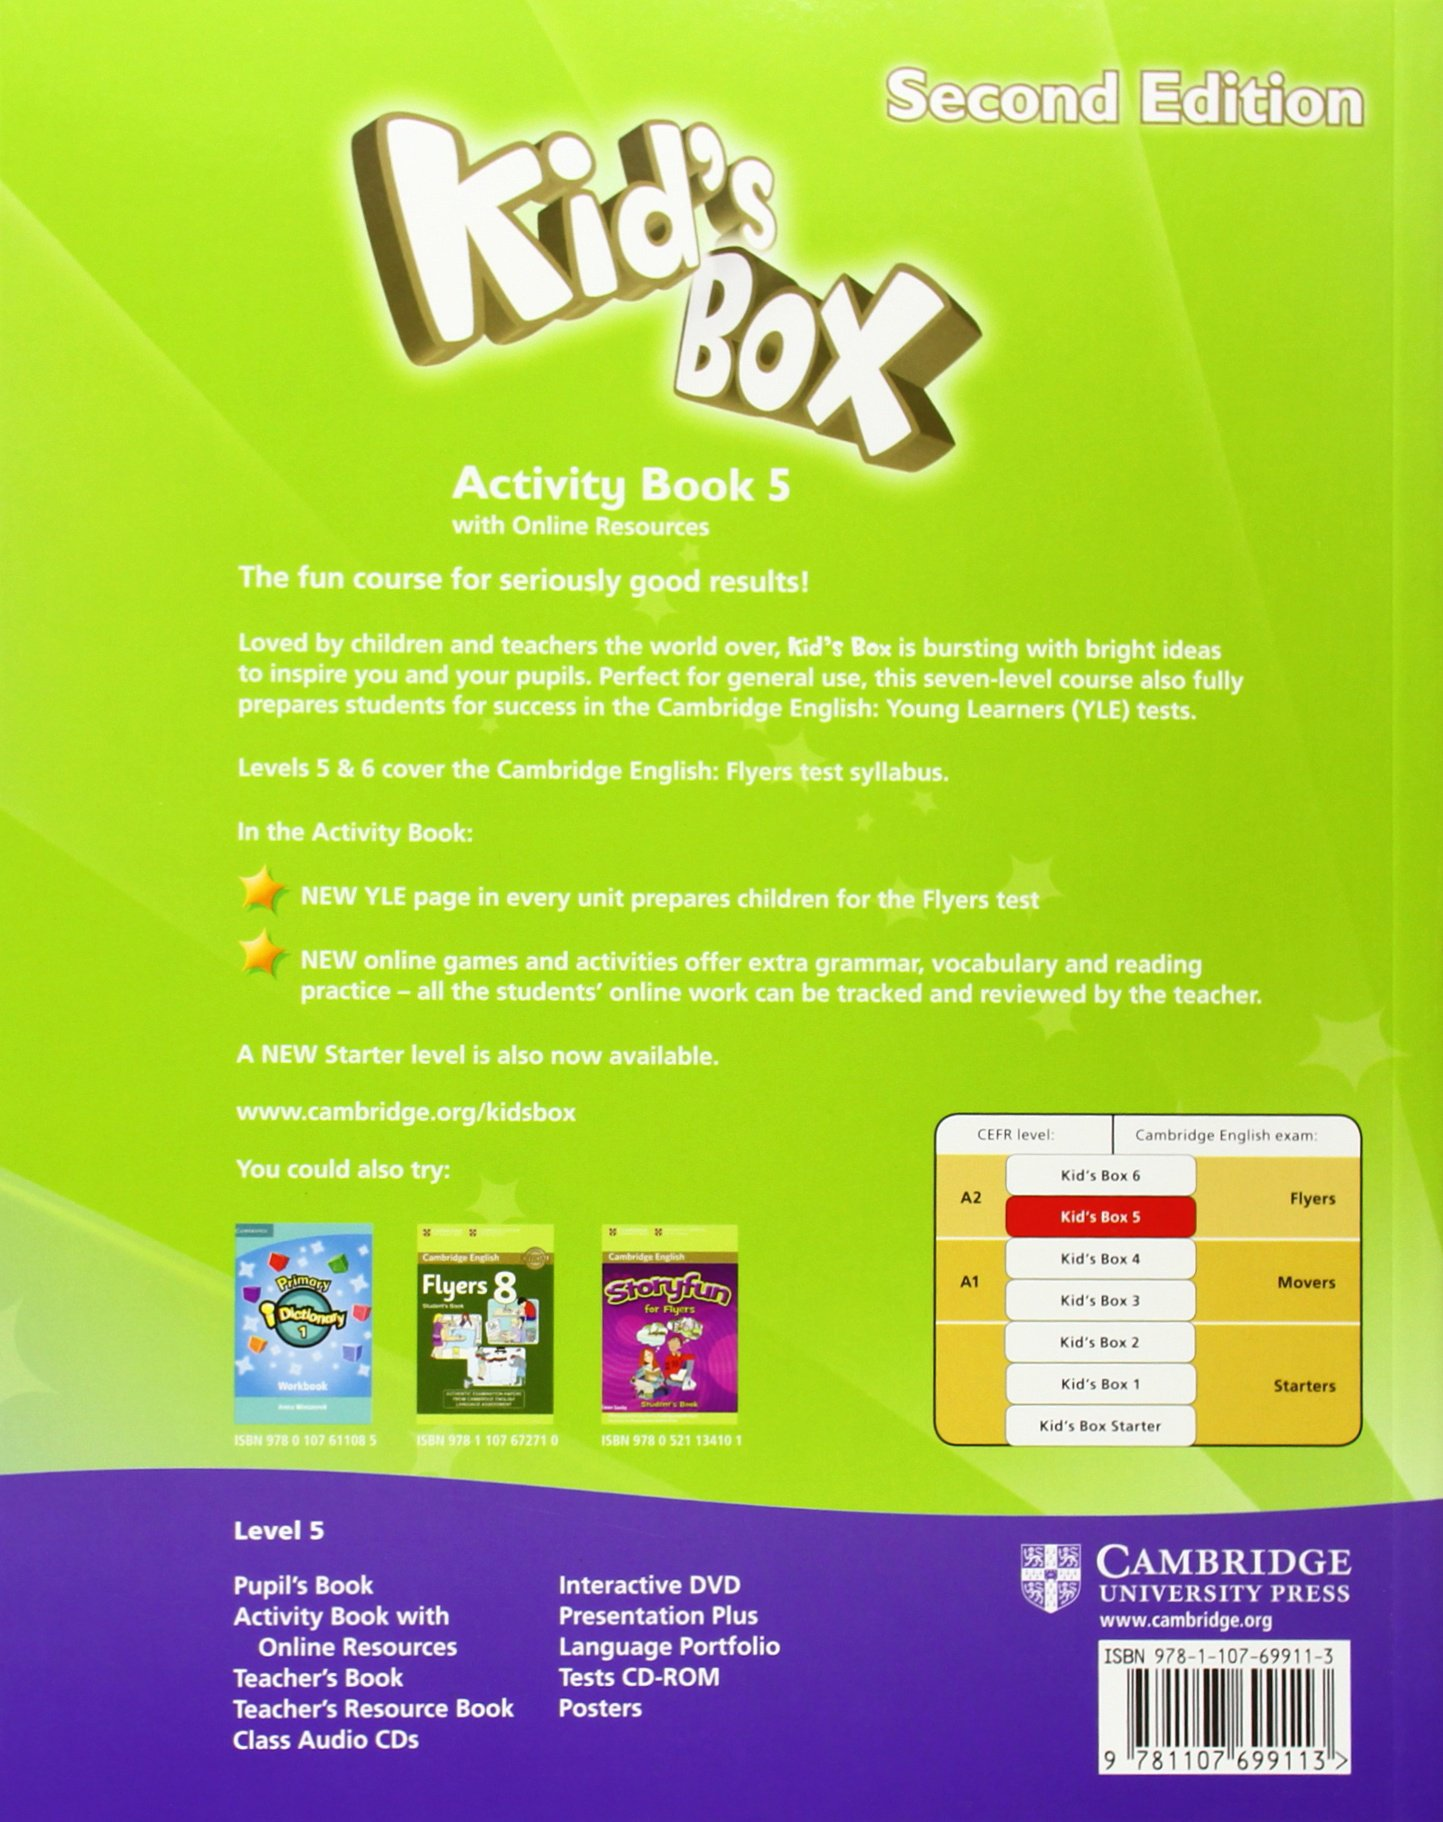 Kid's Box Level 5 Activity Book with Online Resources - 9781107699113:  Amazon.es: Caroline Nixon, Michael Tomlinson: Libros en idiomas extranjeros